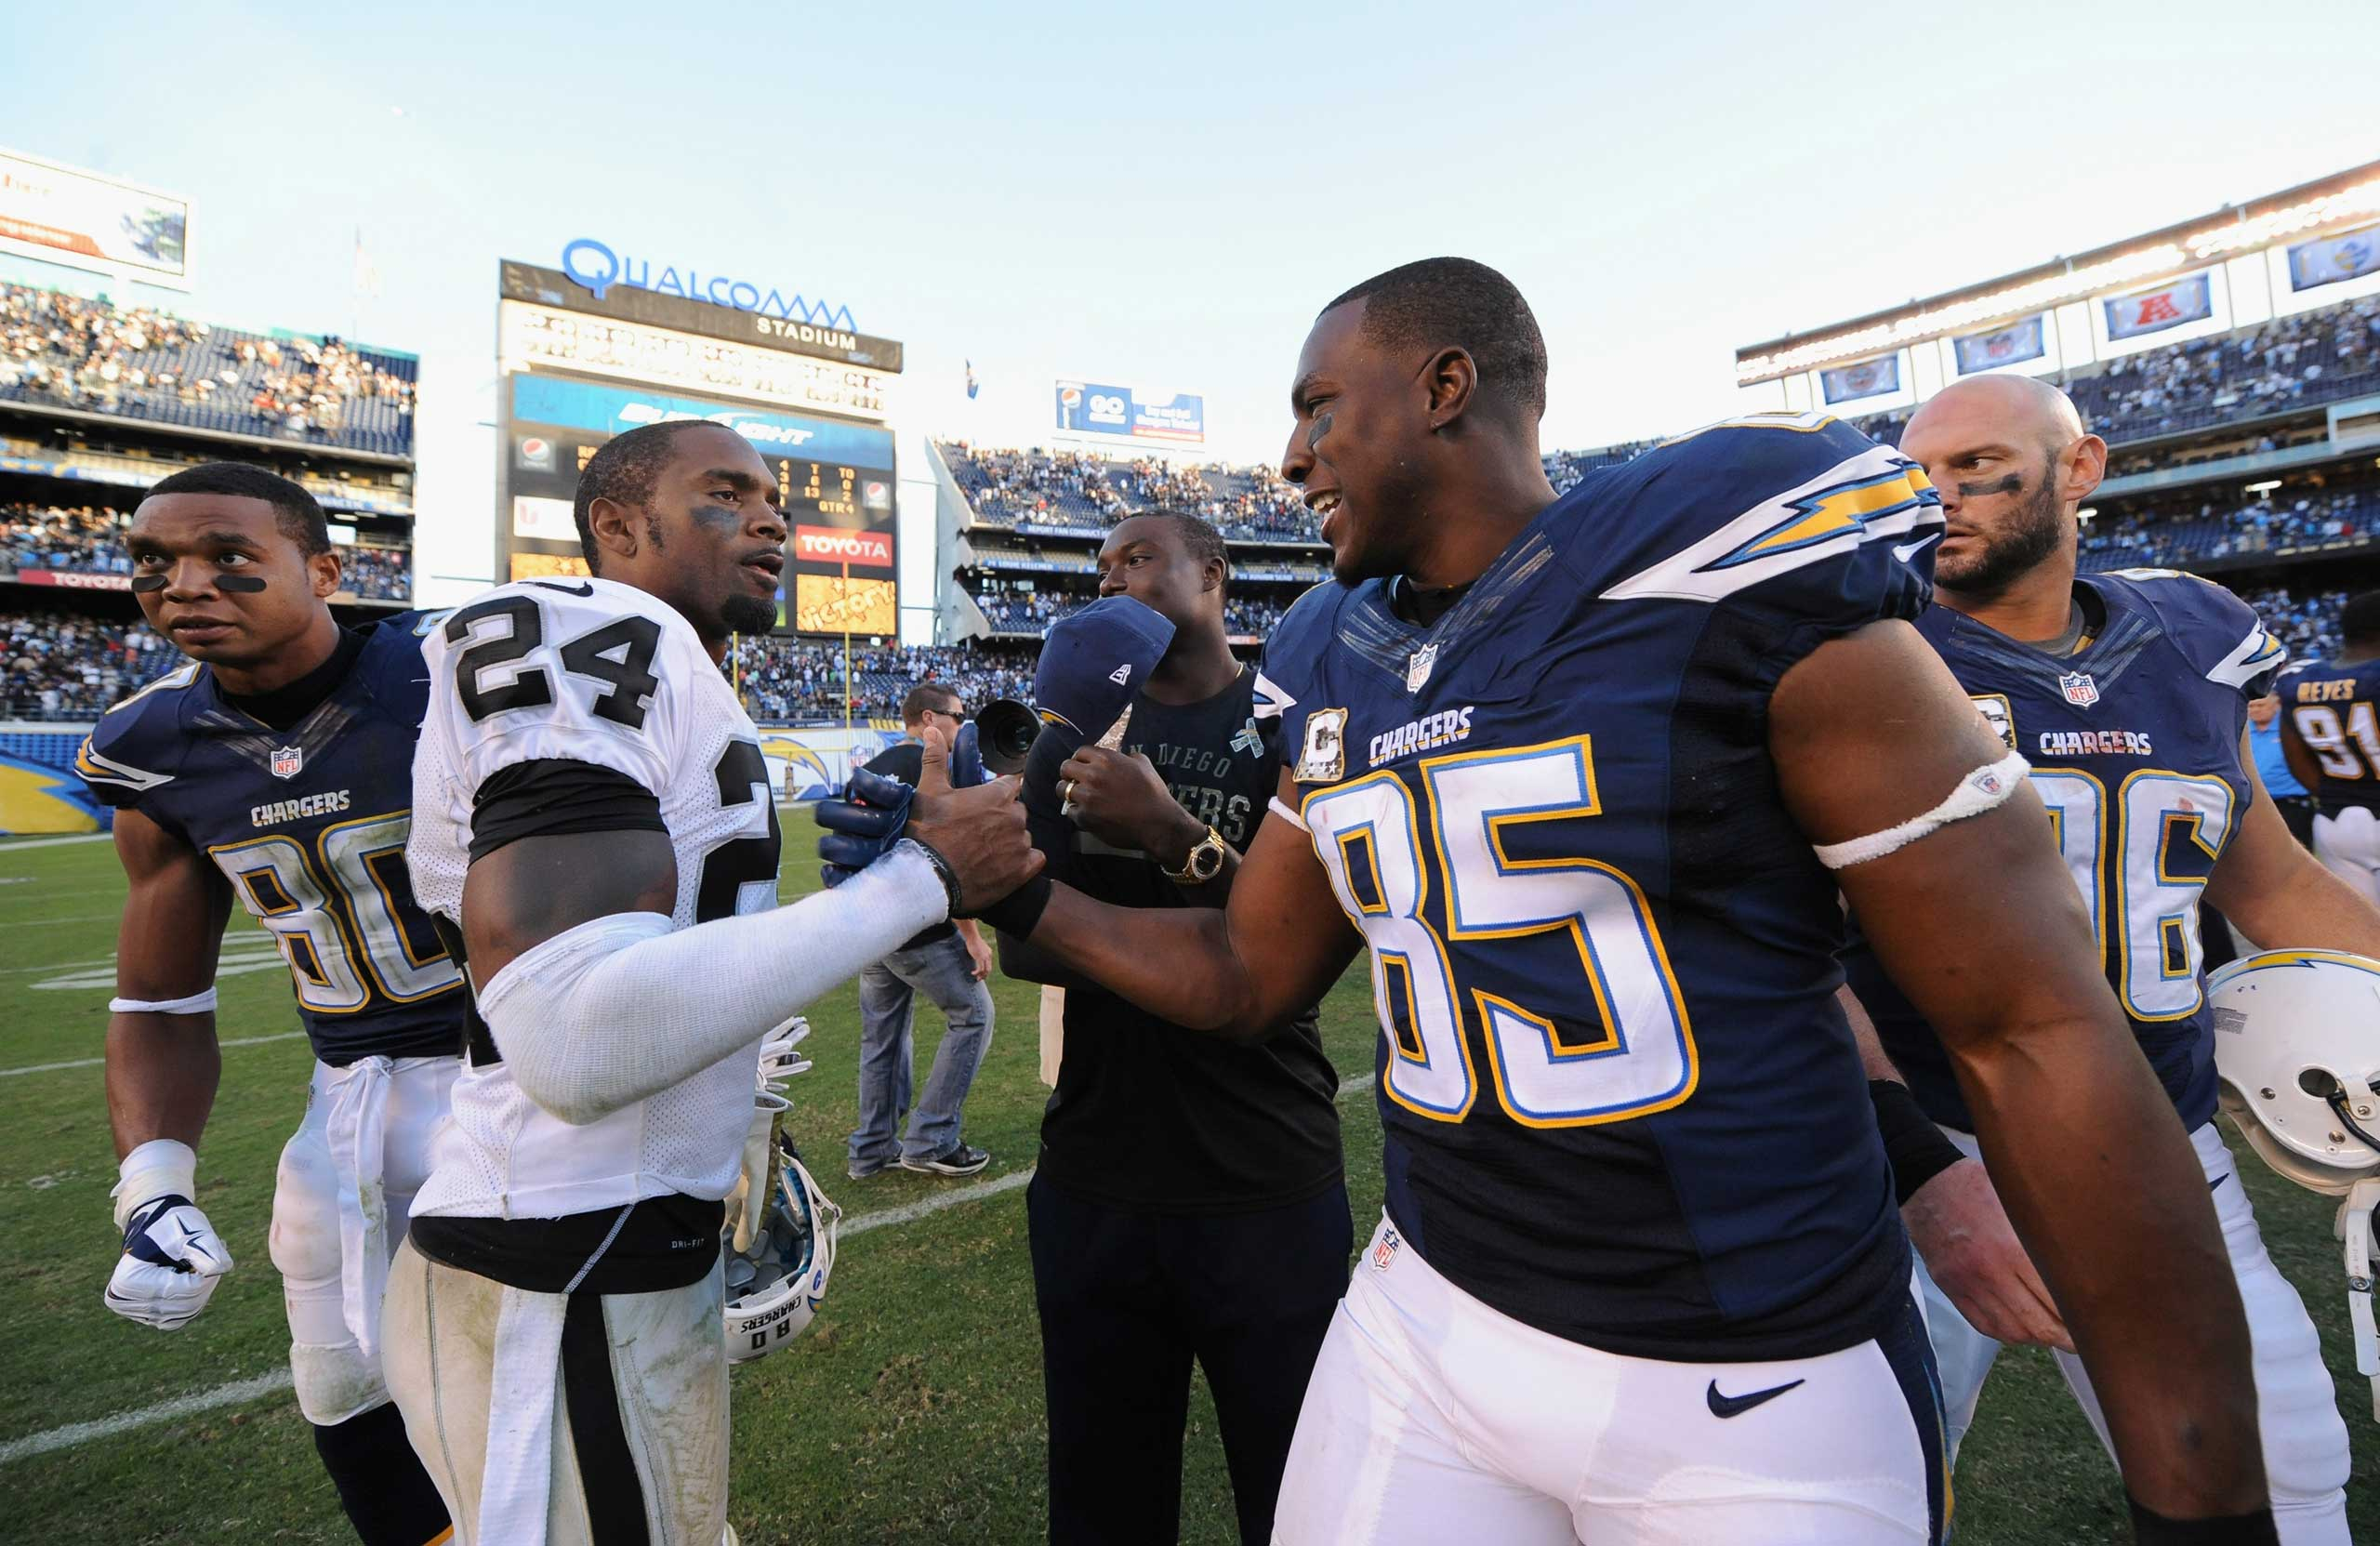 Charles Woodson #24 of the Oakland Raiders congratulated  Antonio Gates #85 of the San Diego Chargers after the Chargers defeated the Oakland Raiders 13-6 in the game at Qualcomm Stadium on Nov. 16, 2014 in San Diego, Calif.